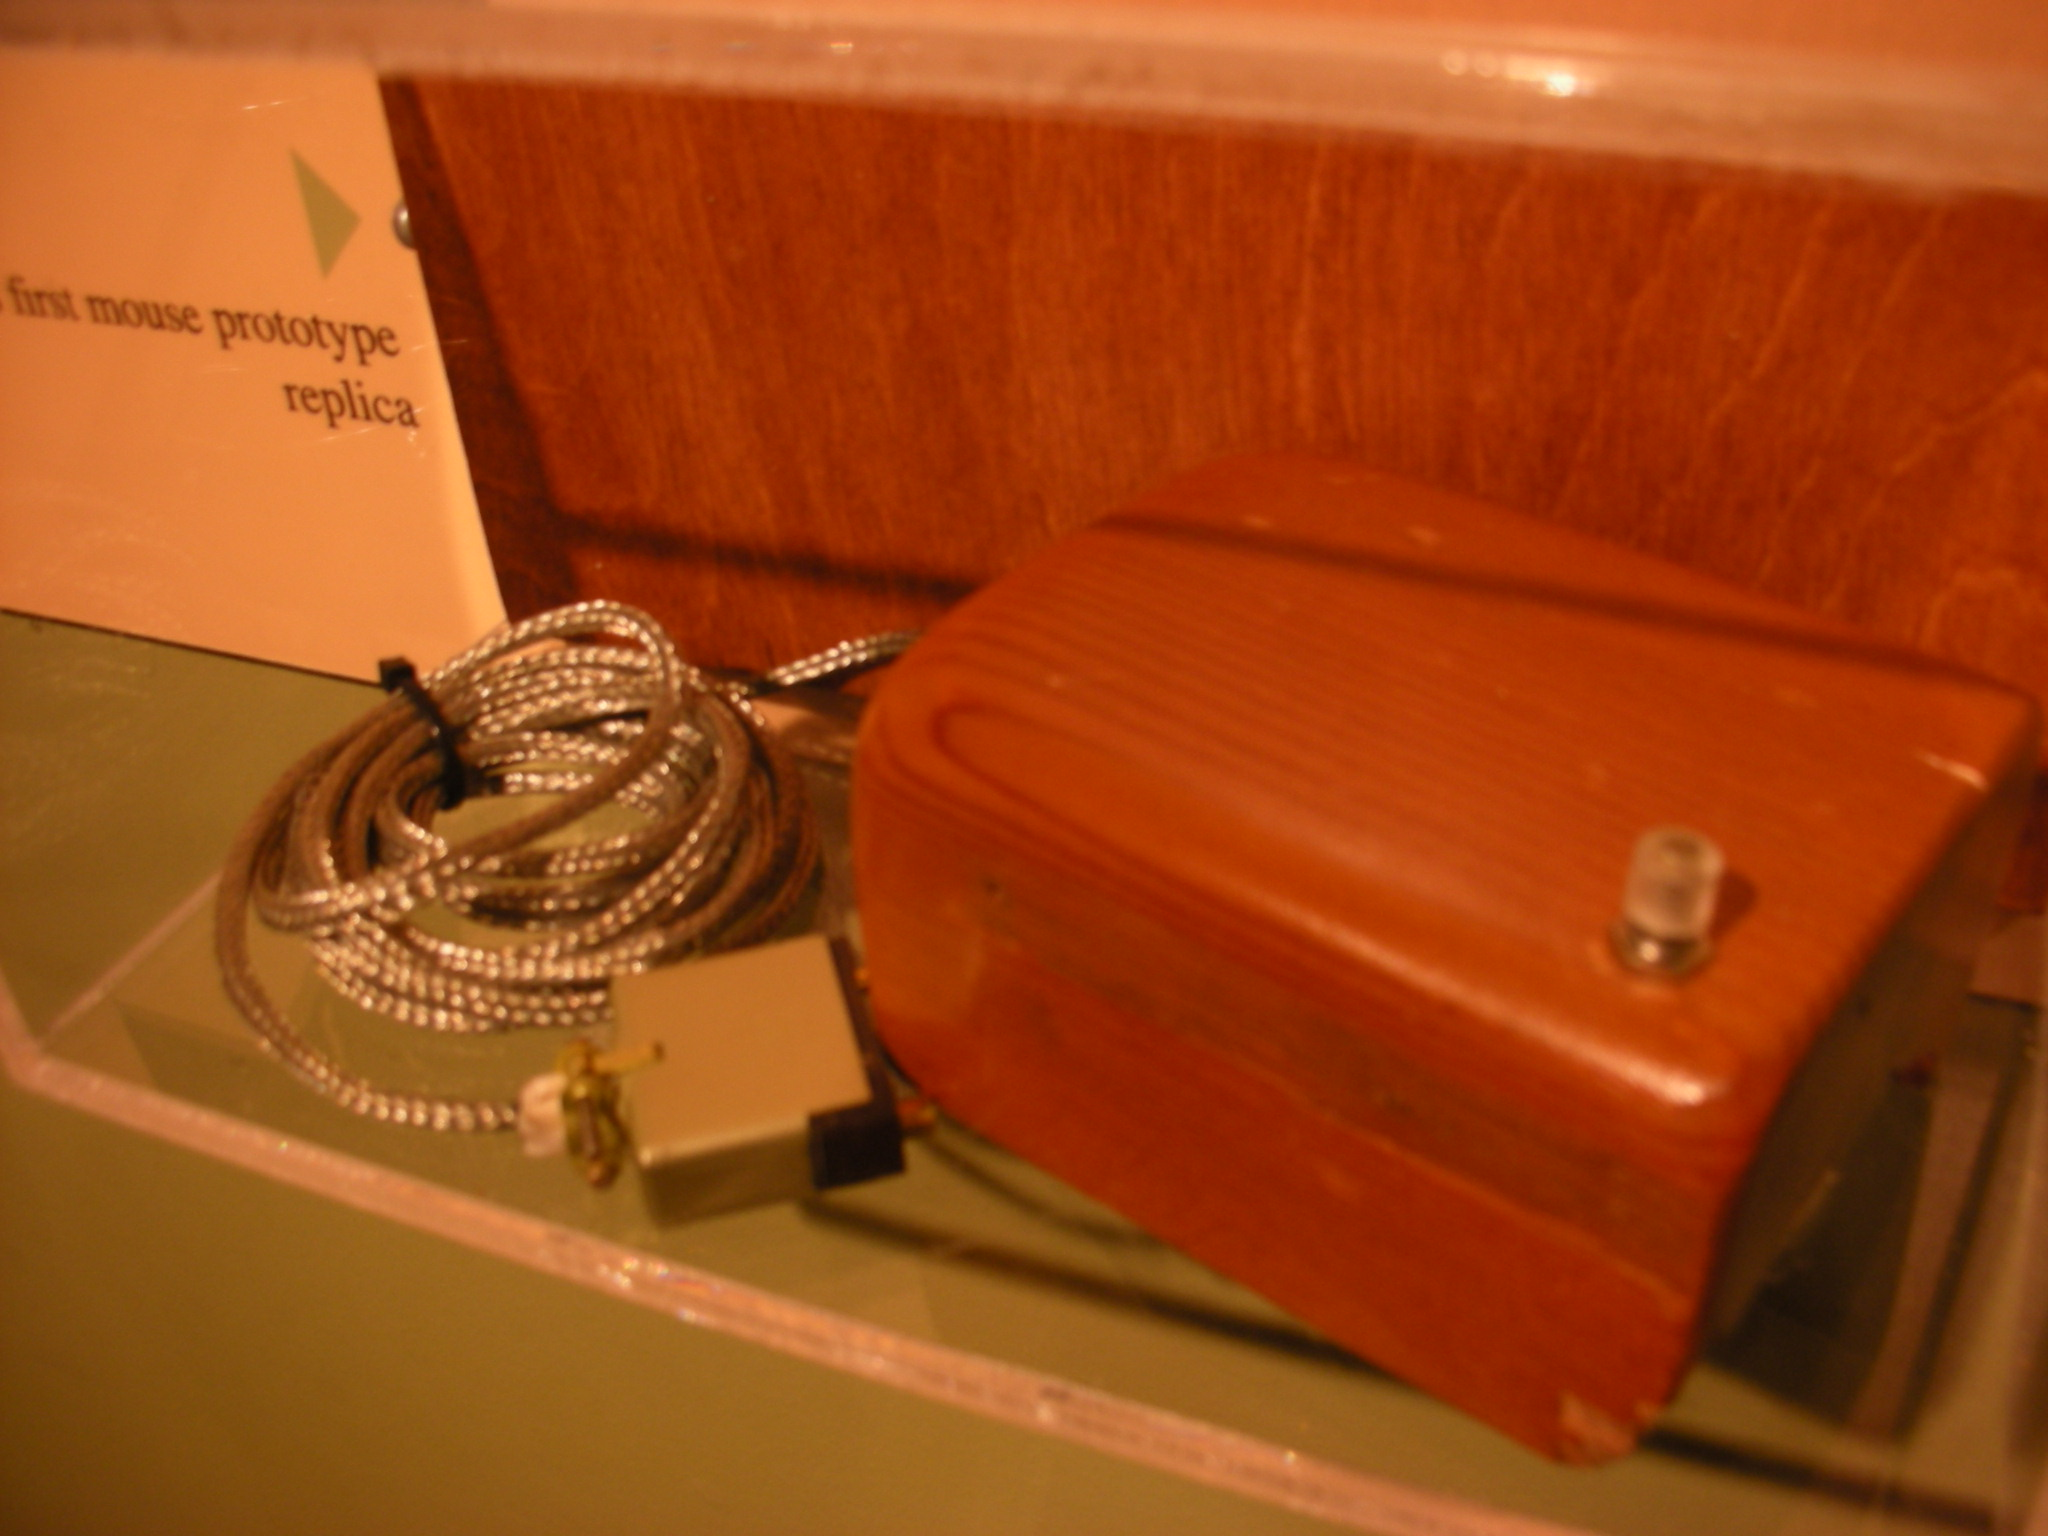 Replica of first computer mouse